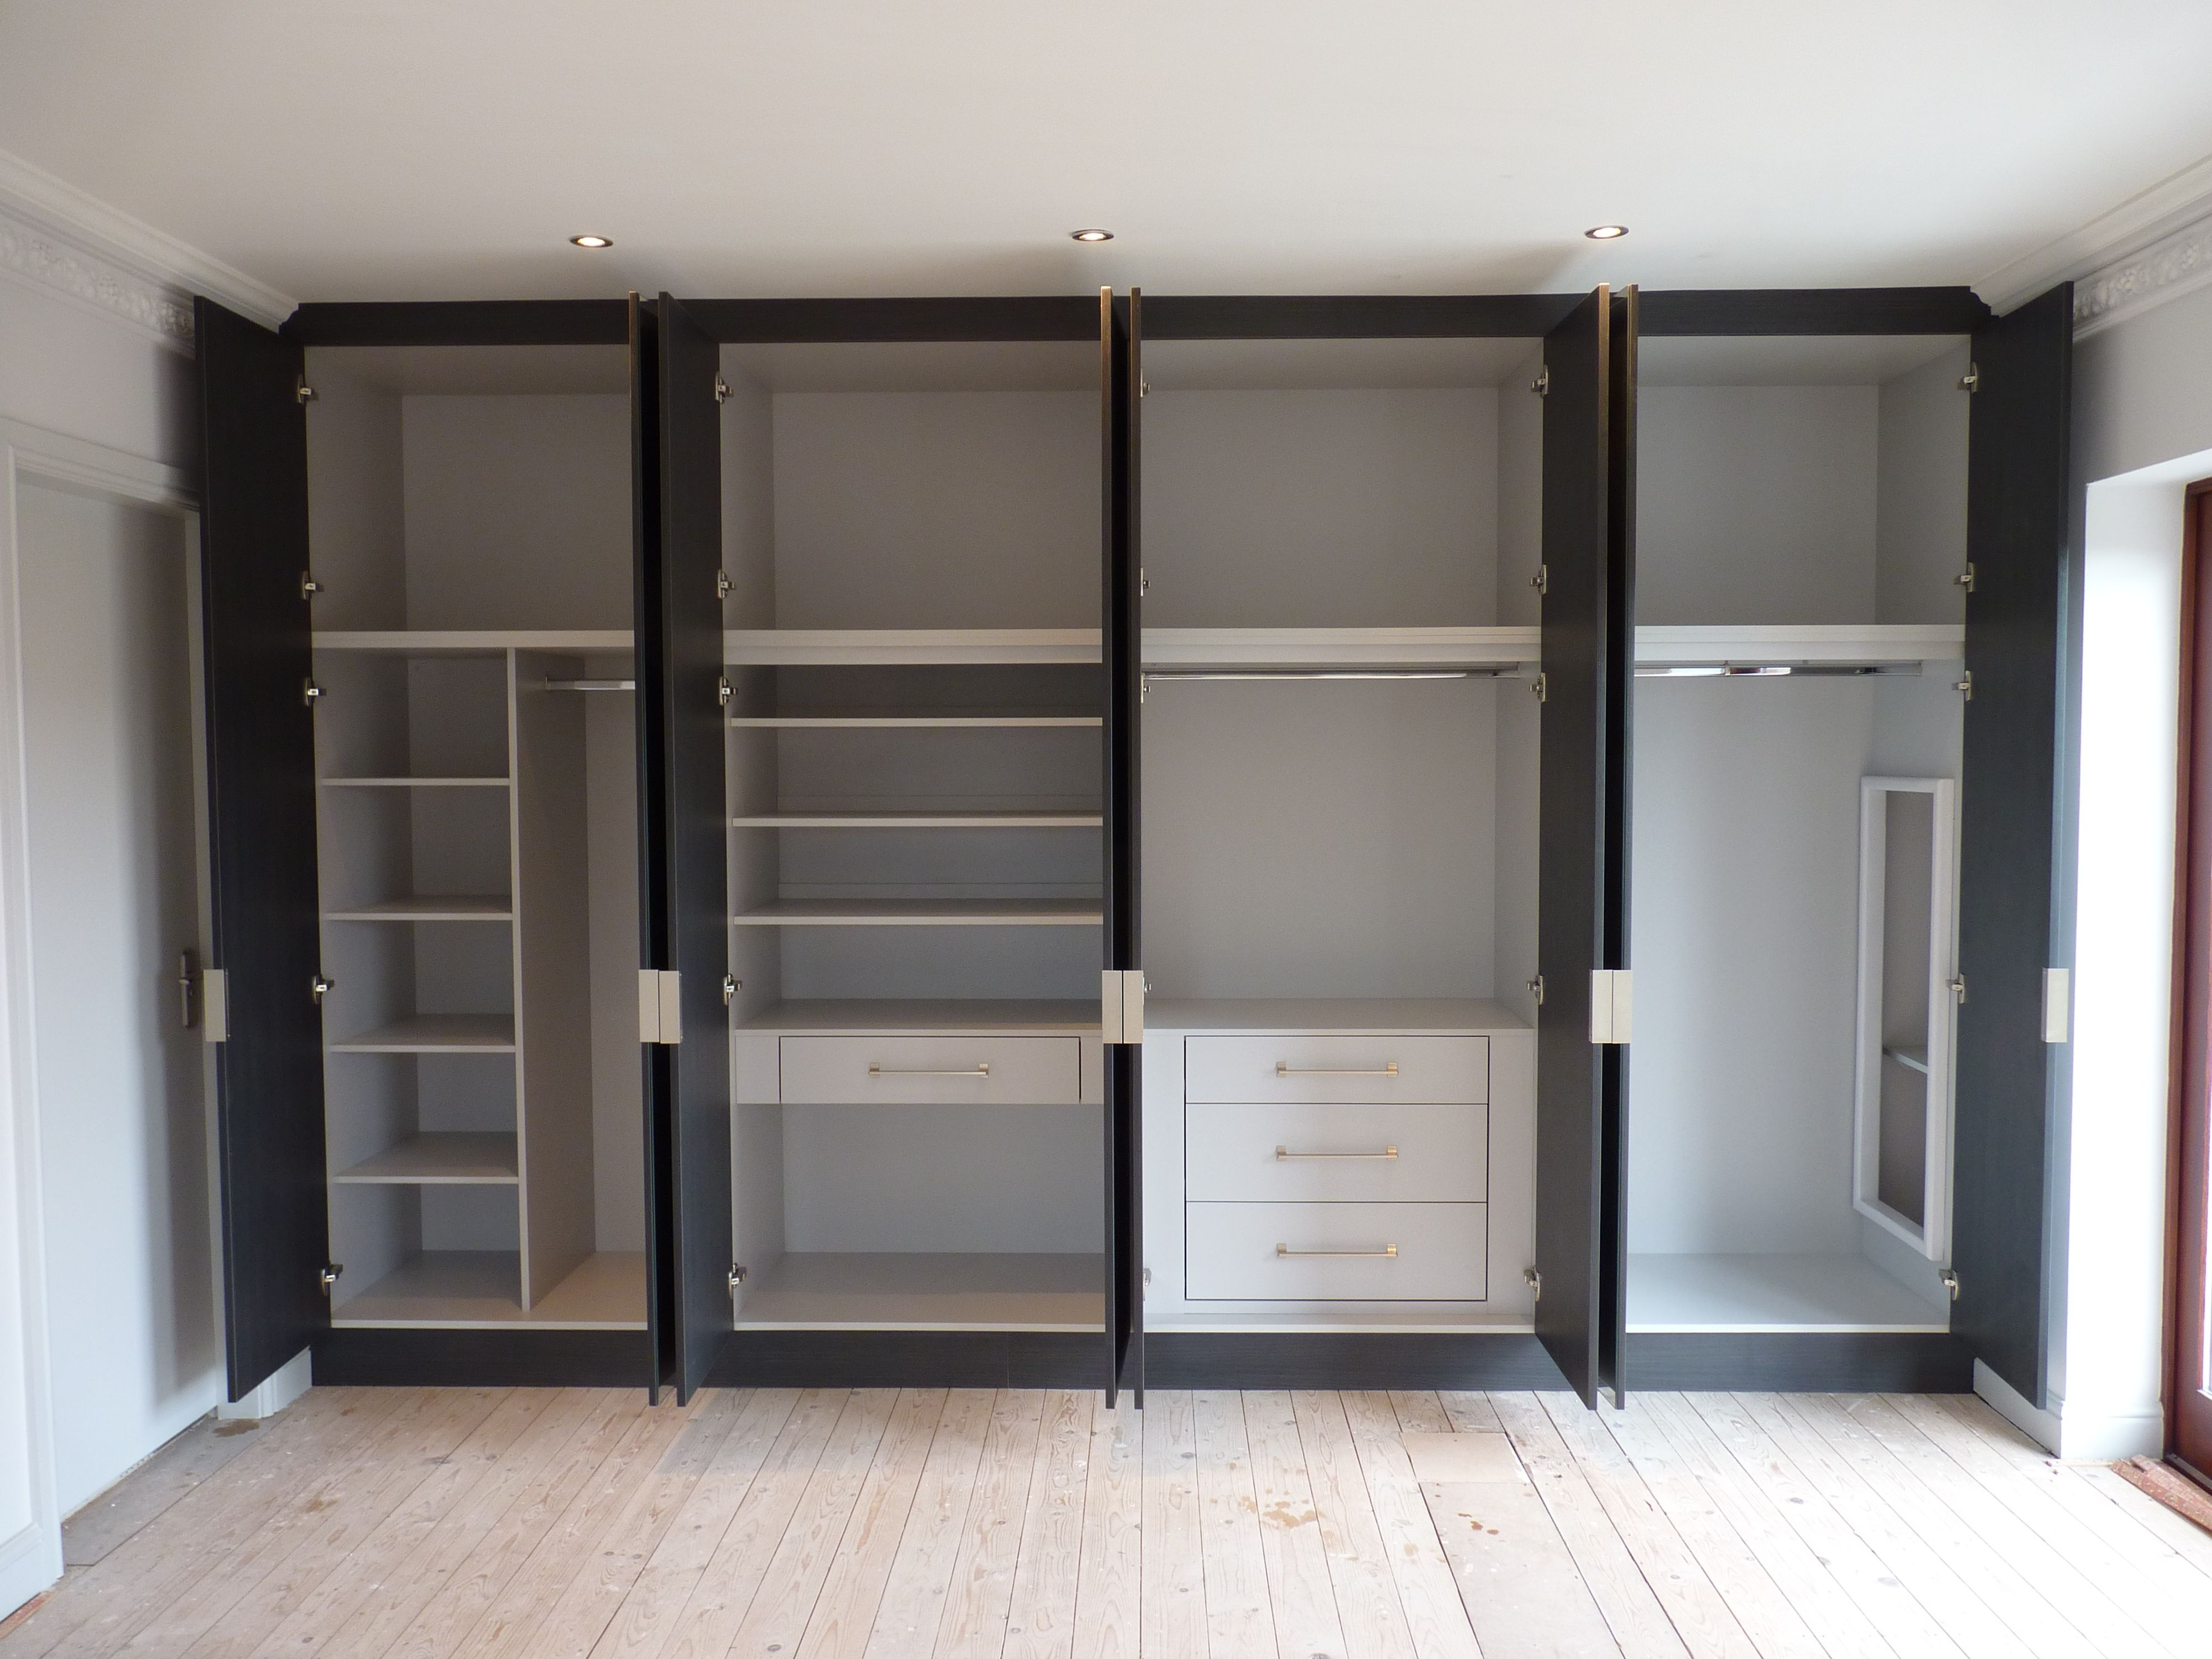 Drawers For Fitted Wardrobes Pertaining To Current Without Door Built In Wardrobe In White And Black Color Panel With (View 7 of 15)